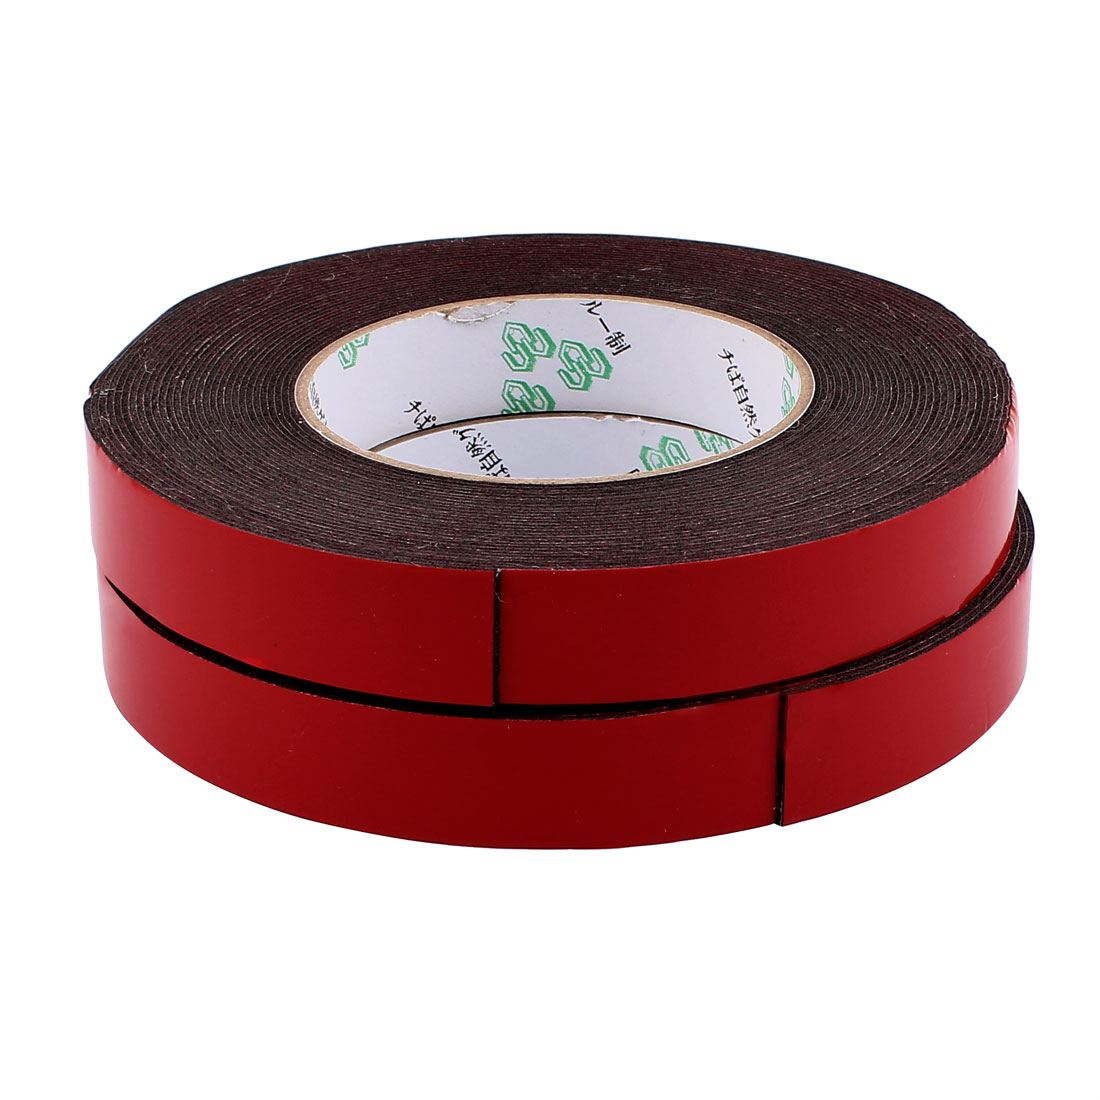 2 Pcs 20mmx1mm Double Sided Sponge Tape Adhesive Sticker Foam Glue Strip Sealing 10 Meters 33Ft